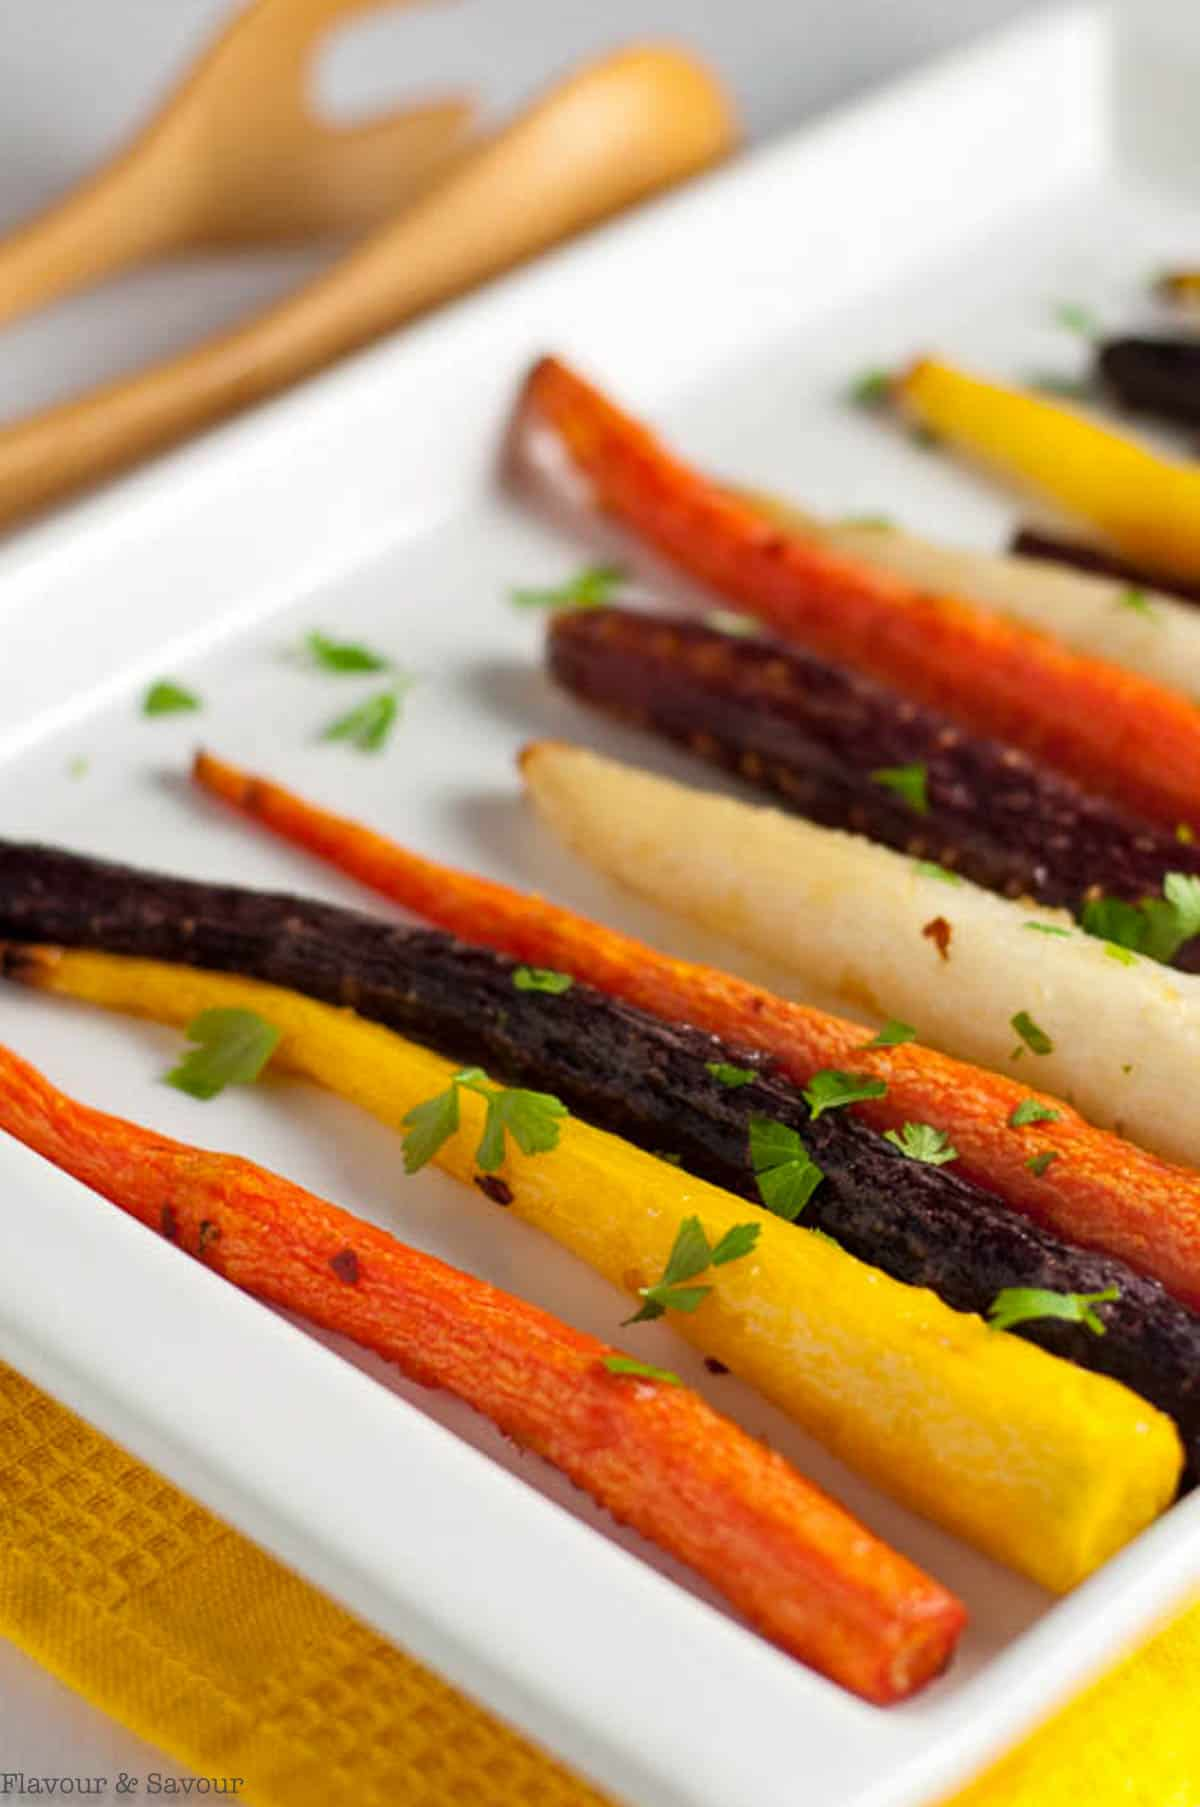 Roasted carrots sprinkled with parsley